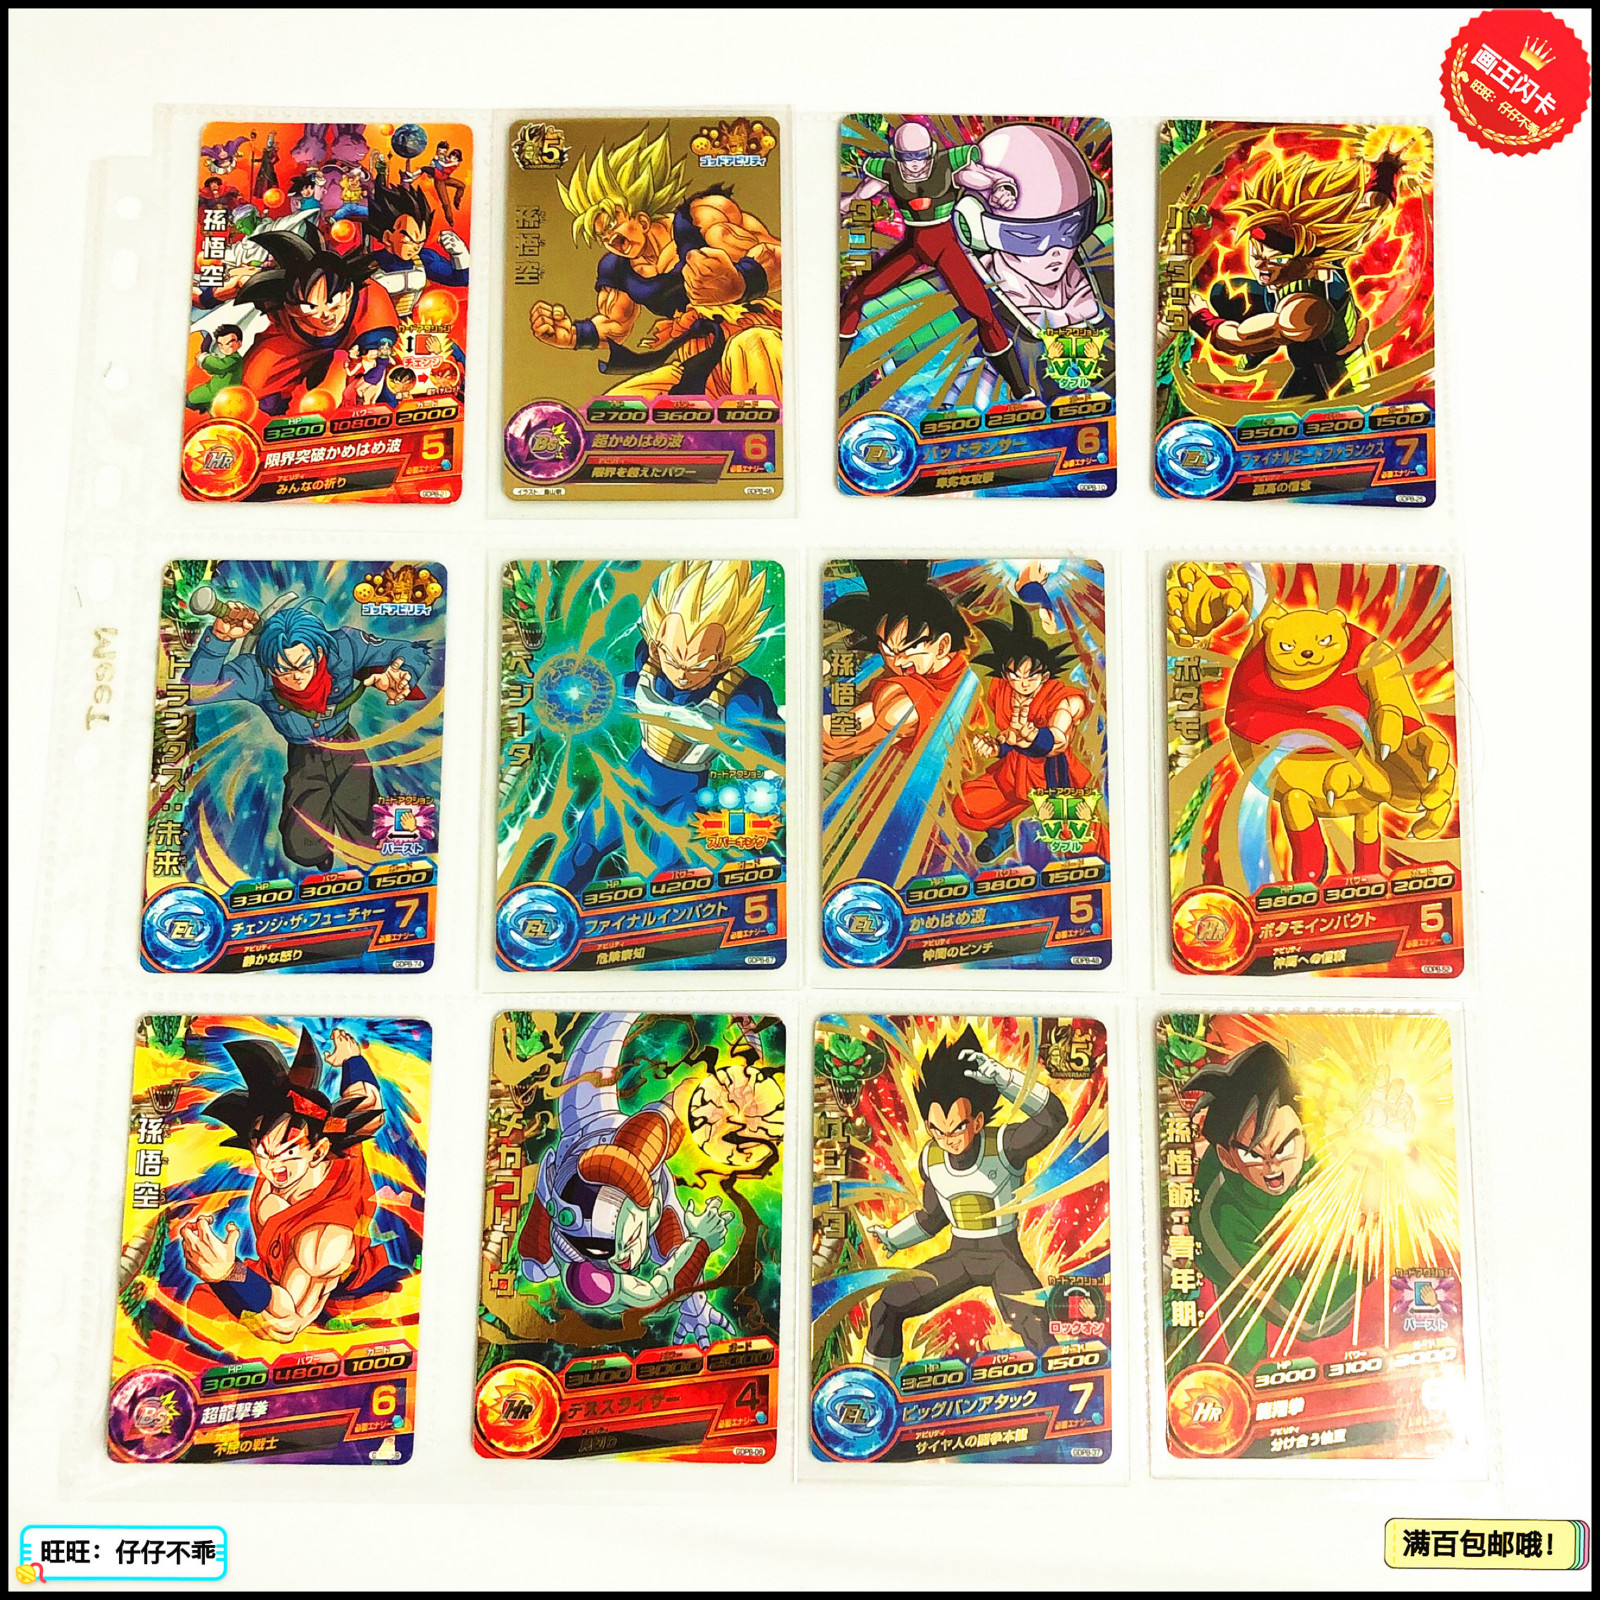 Japan Original Dragon Ball Hero Card GDPB 5th Anniversary Goku Toys Hobbies Collectibles Game Collection Anime Cards